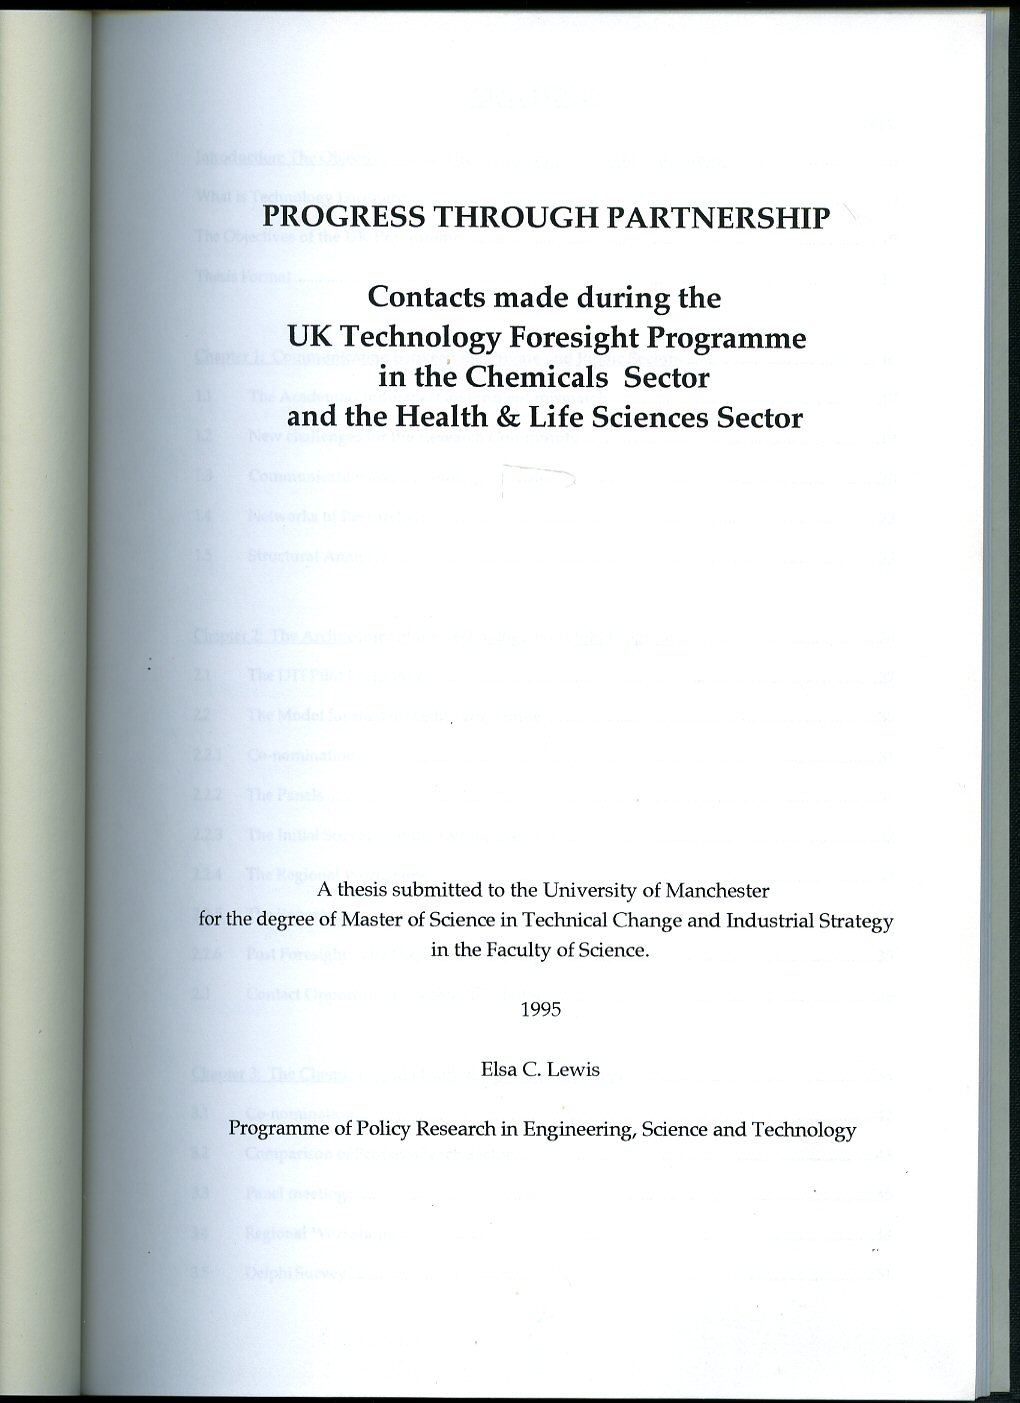 A thesis submitted for the degree of master of science